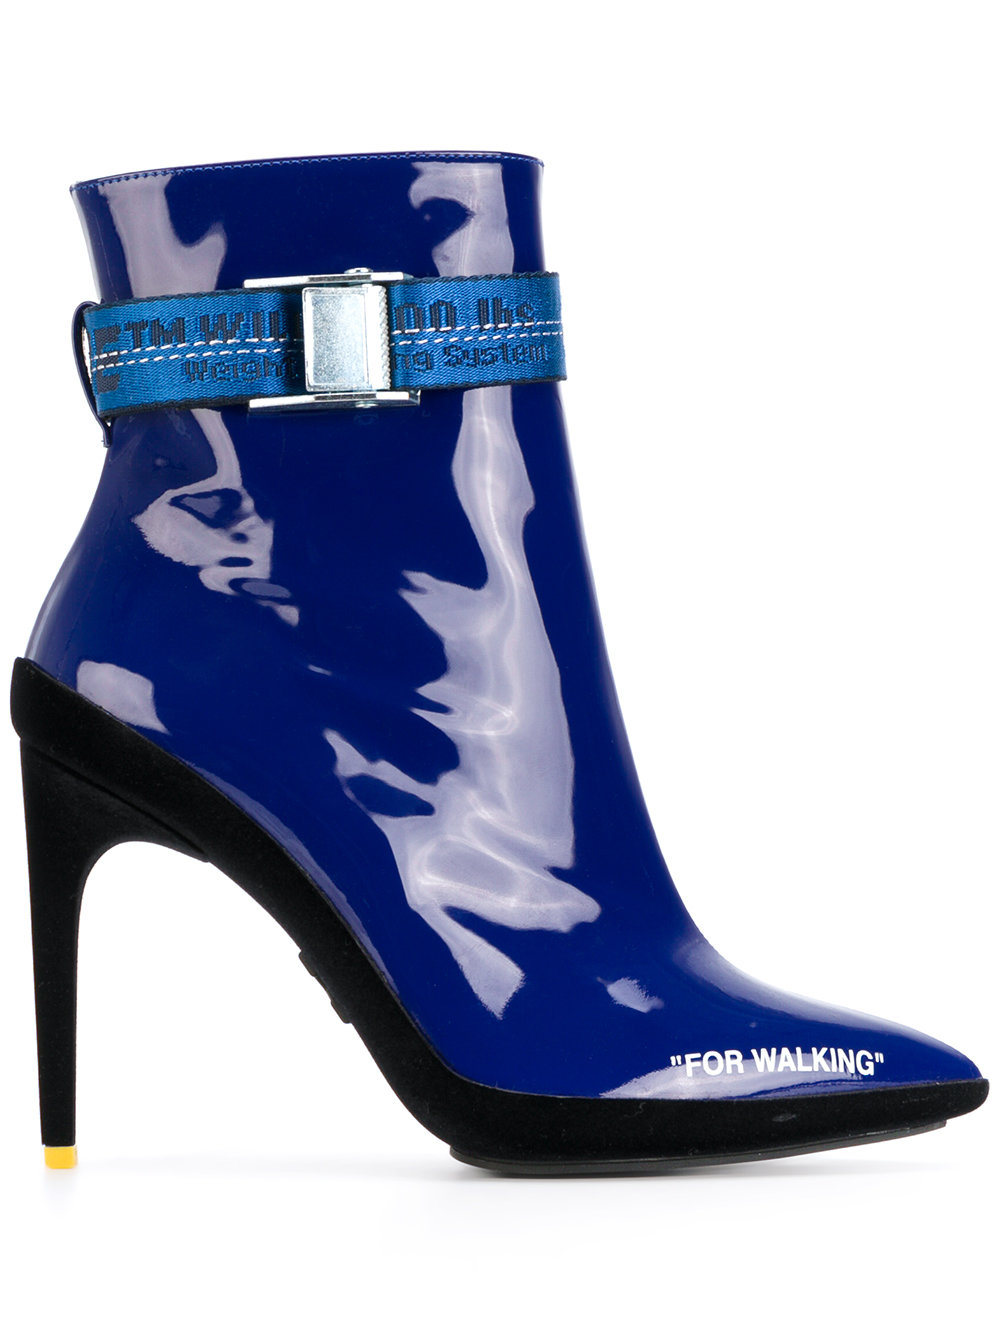 Off-White FOR WALKING ANKLE BOOT BLUE WHITE